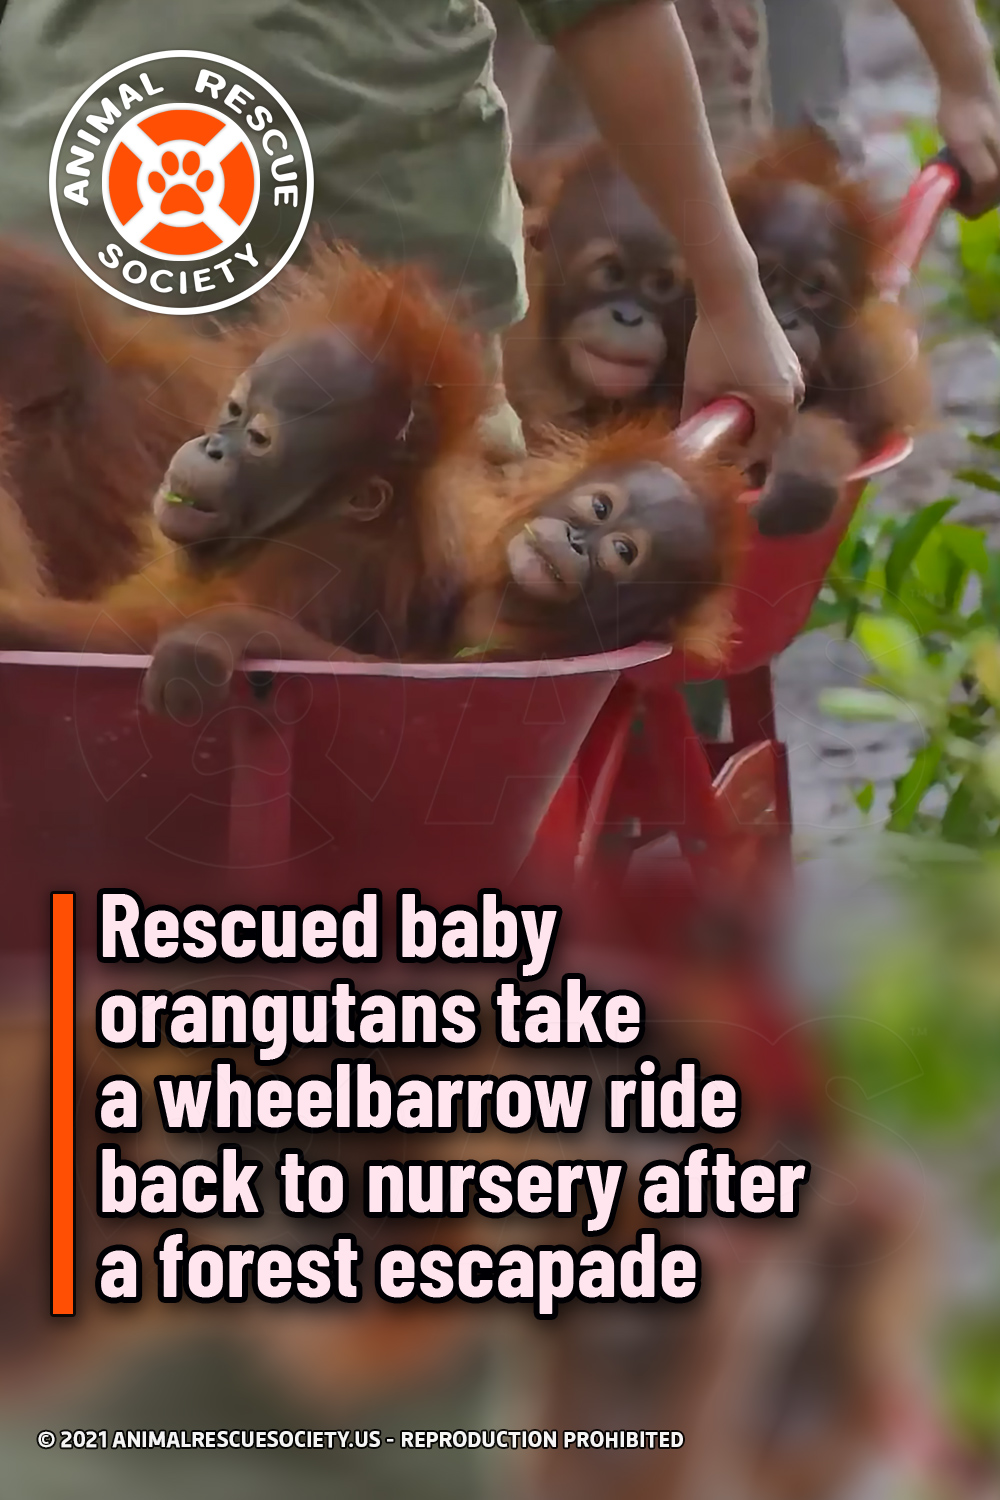 Rescued baby orangutans take a wheelbarrow ride back to nursery after a forest escapade